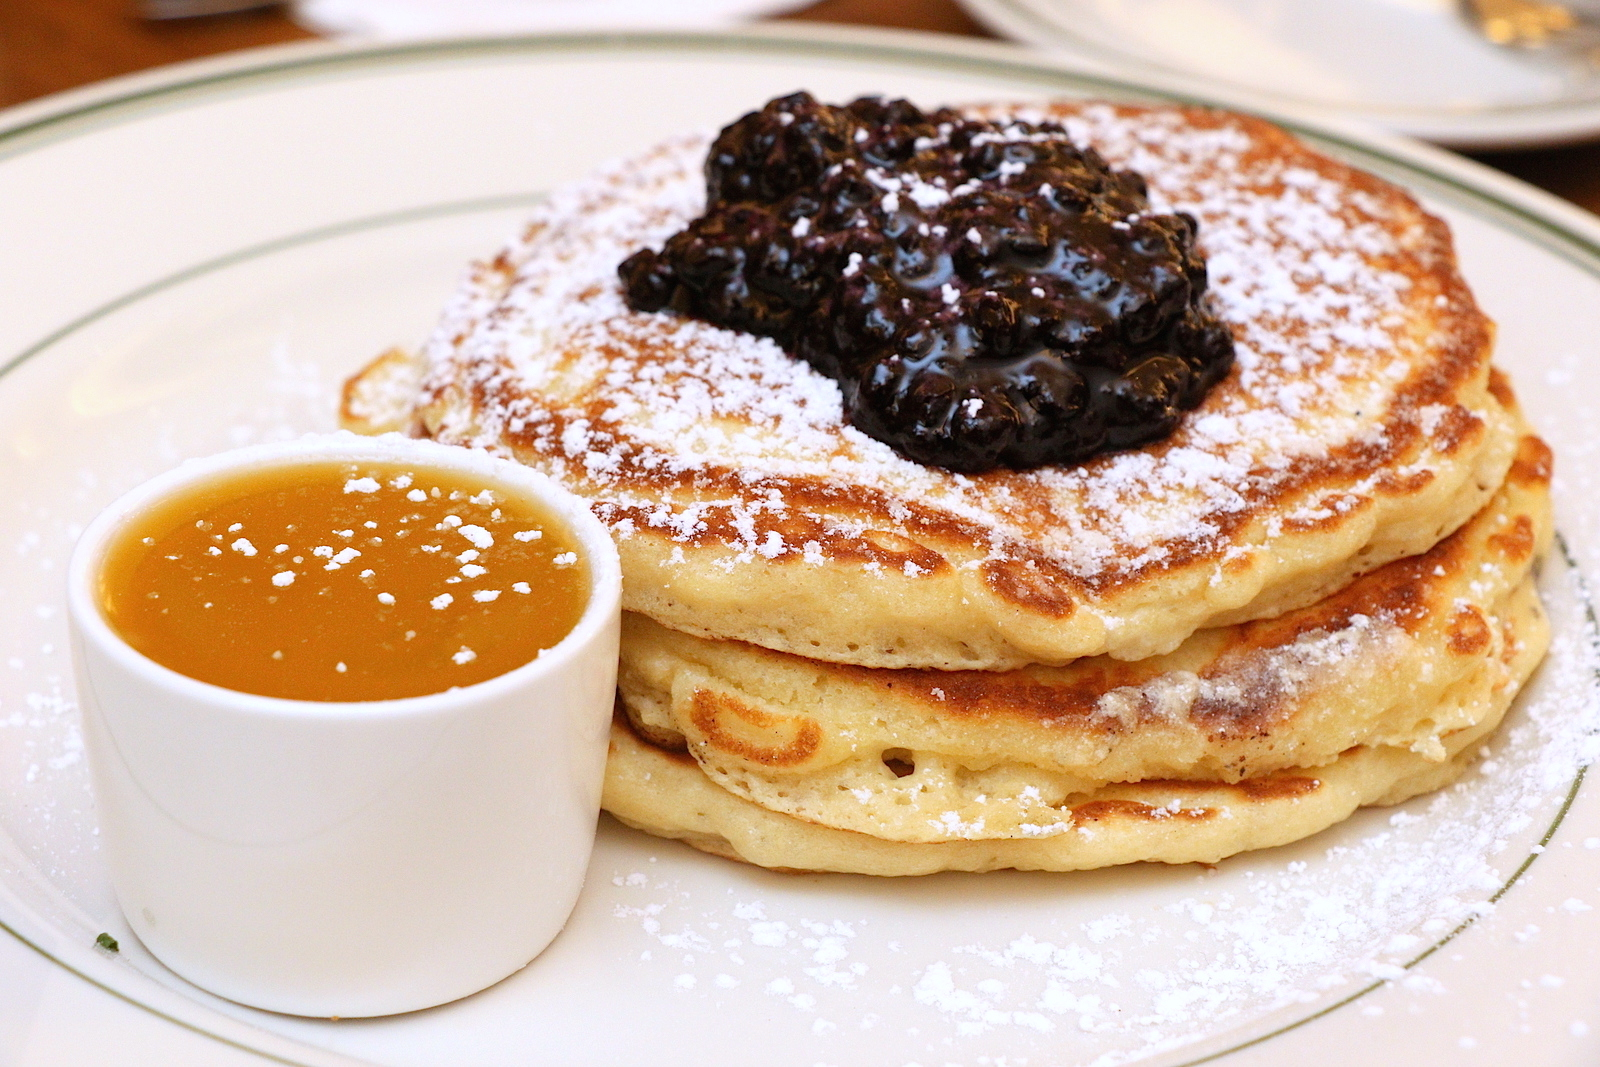 Clinton St Baking Company: All Day Breakfast and Southern ...